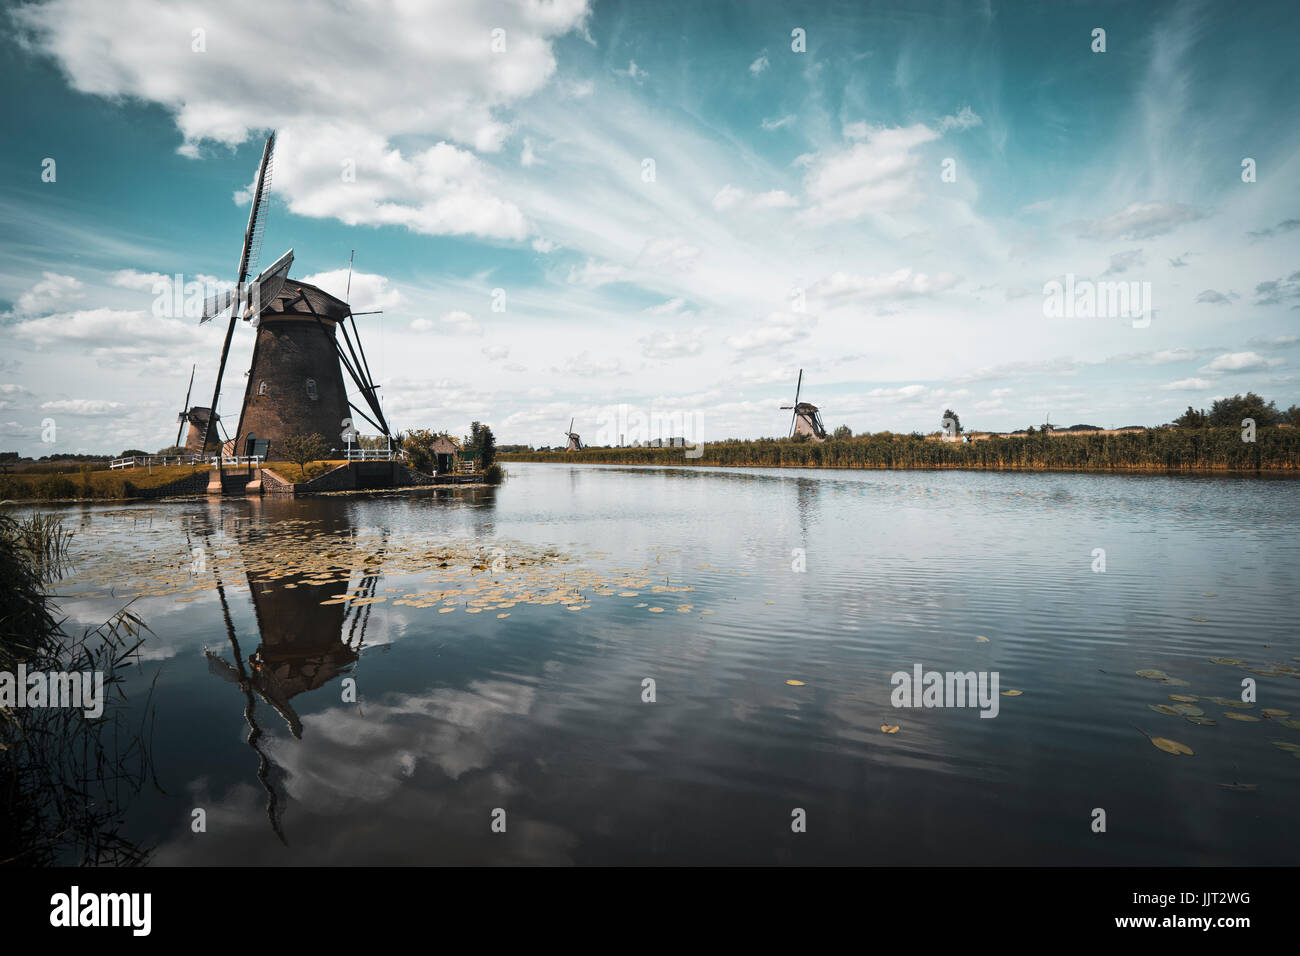 kinderdijk landscape with the typical 19 windmills - Stock Image